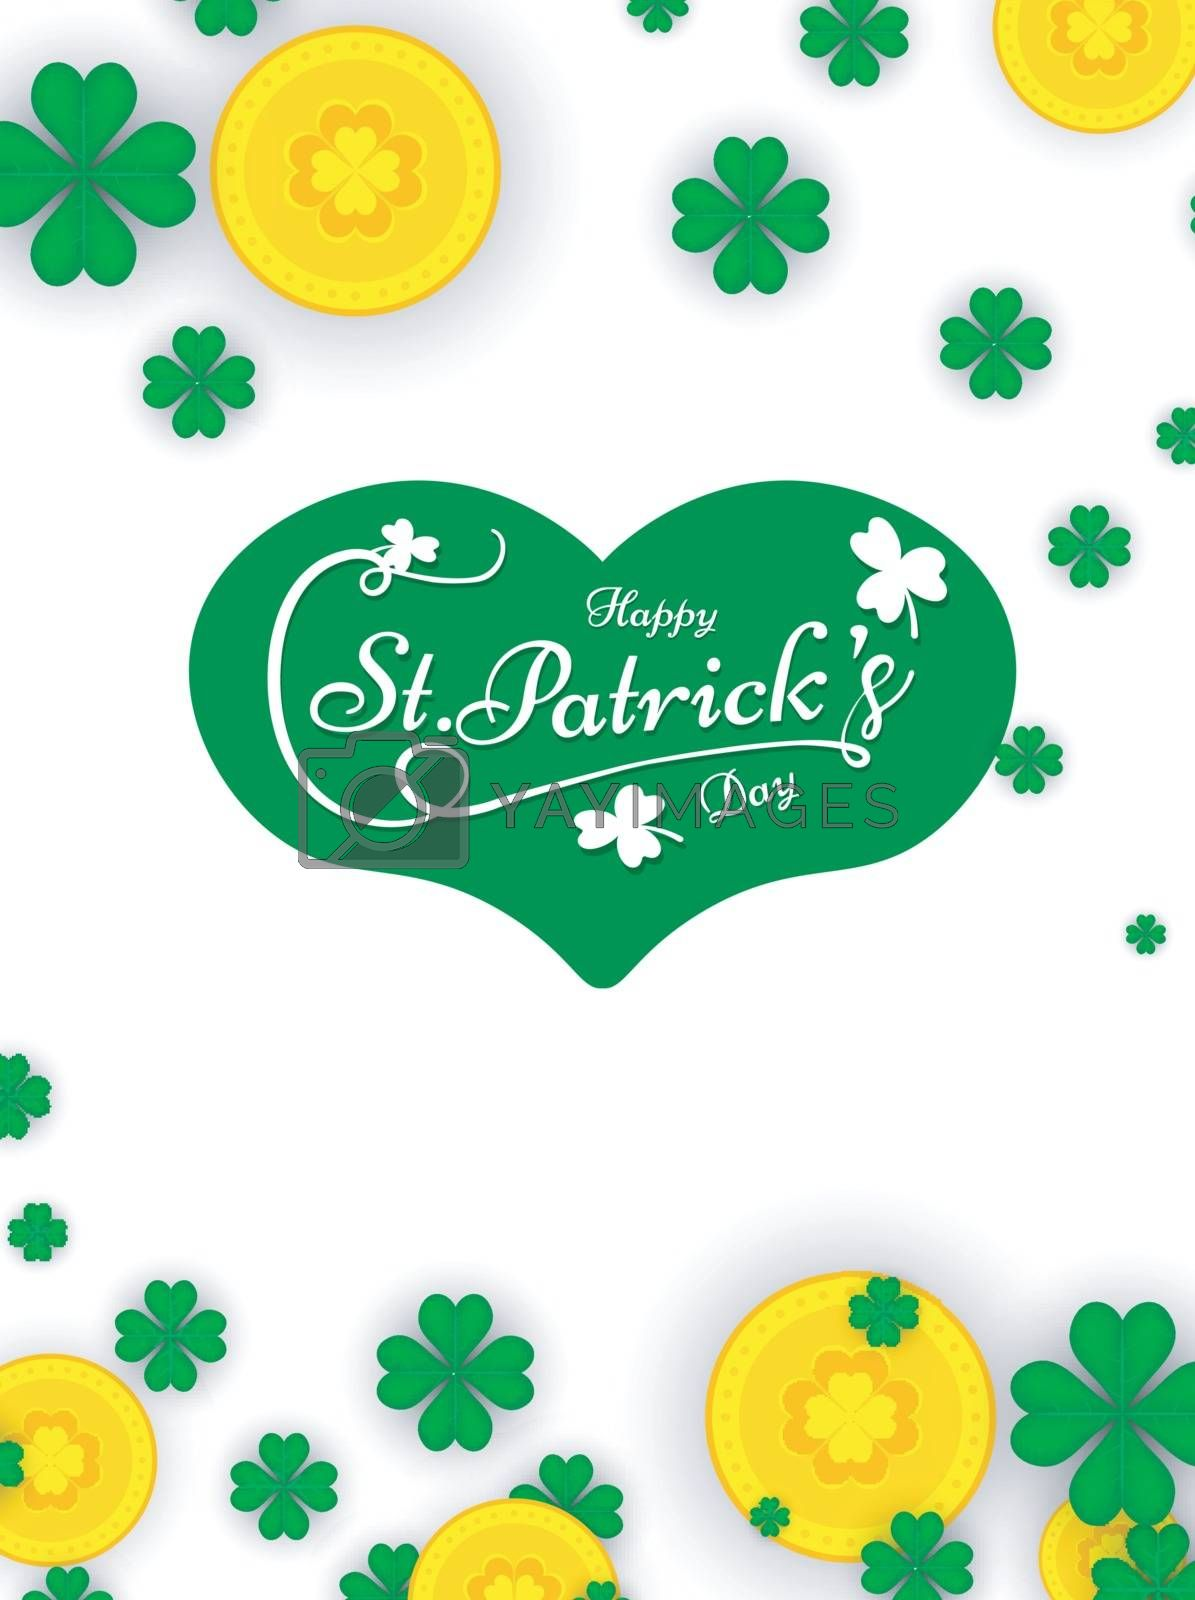 Royalty free image of St Patricks Day greeting card design decorated with gold coins a by aispl